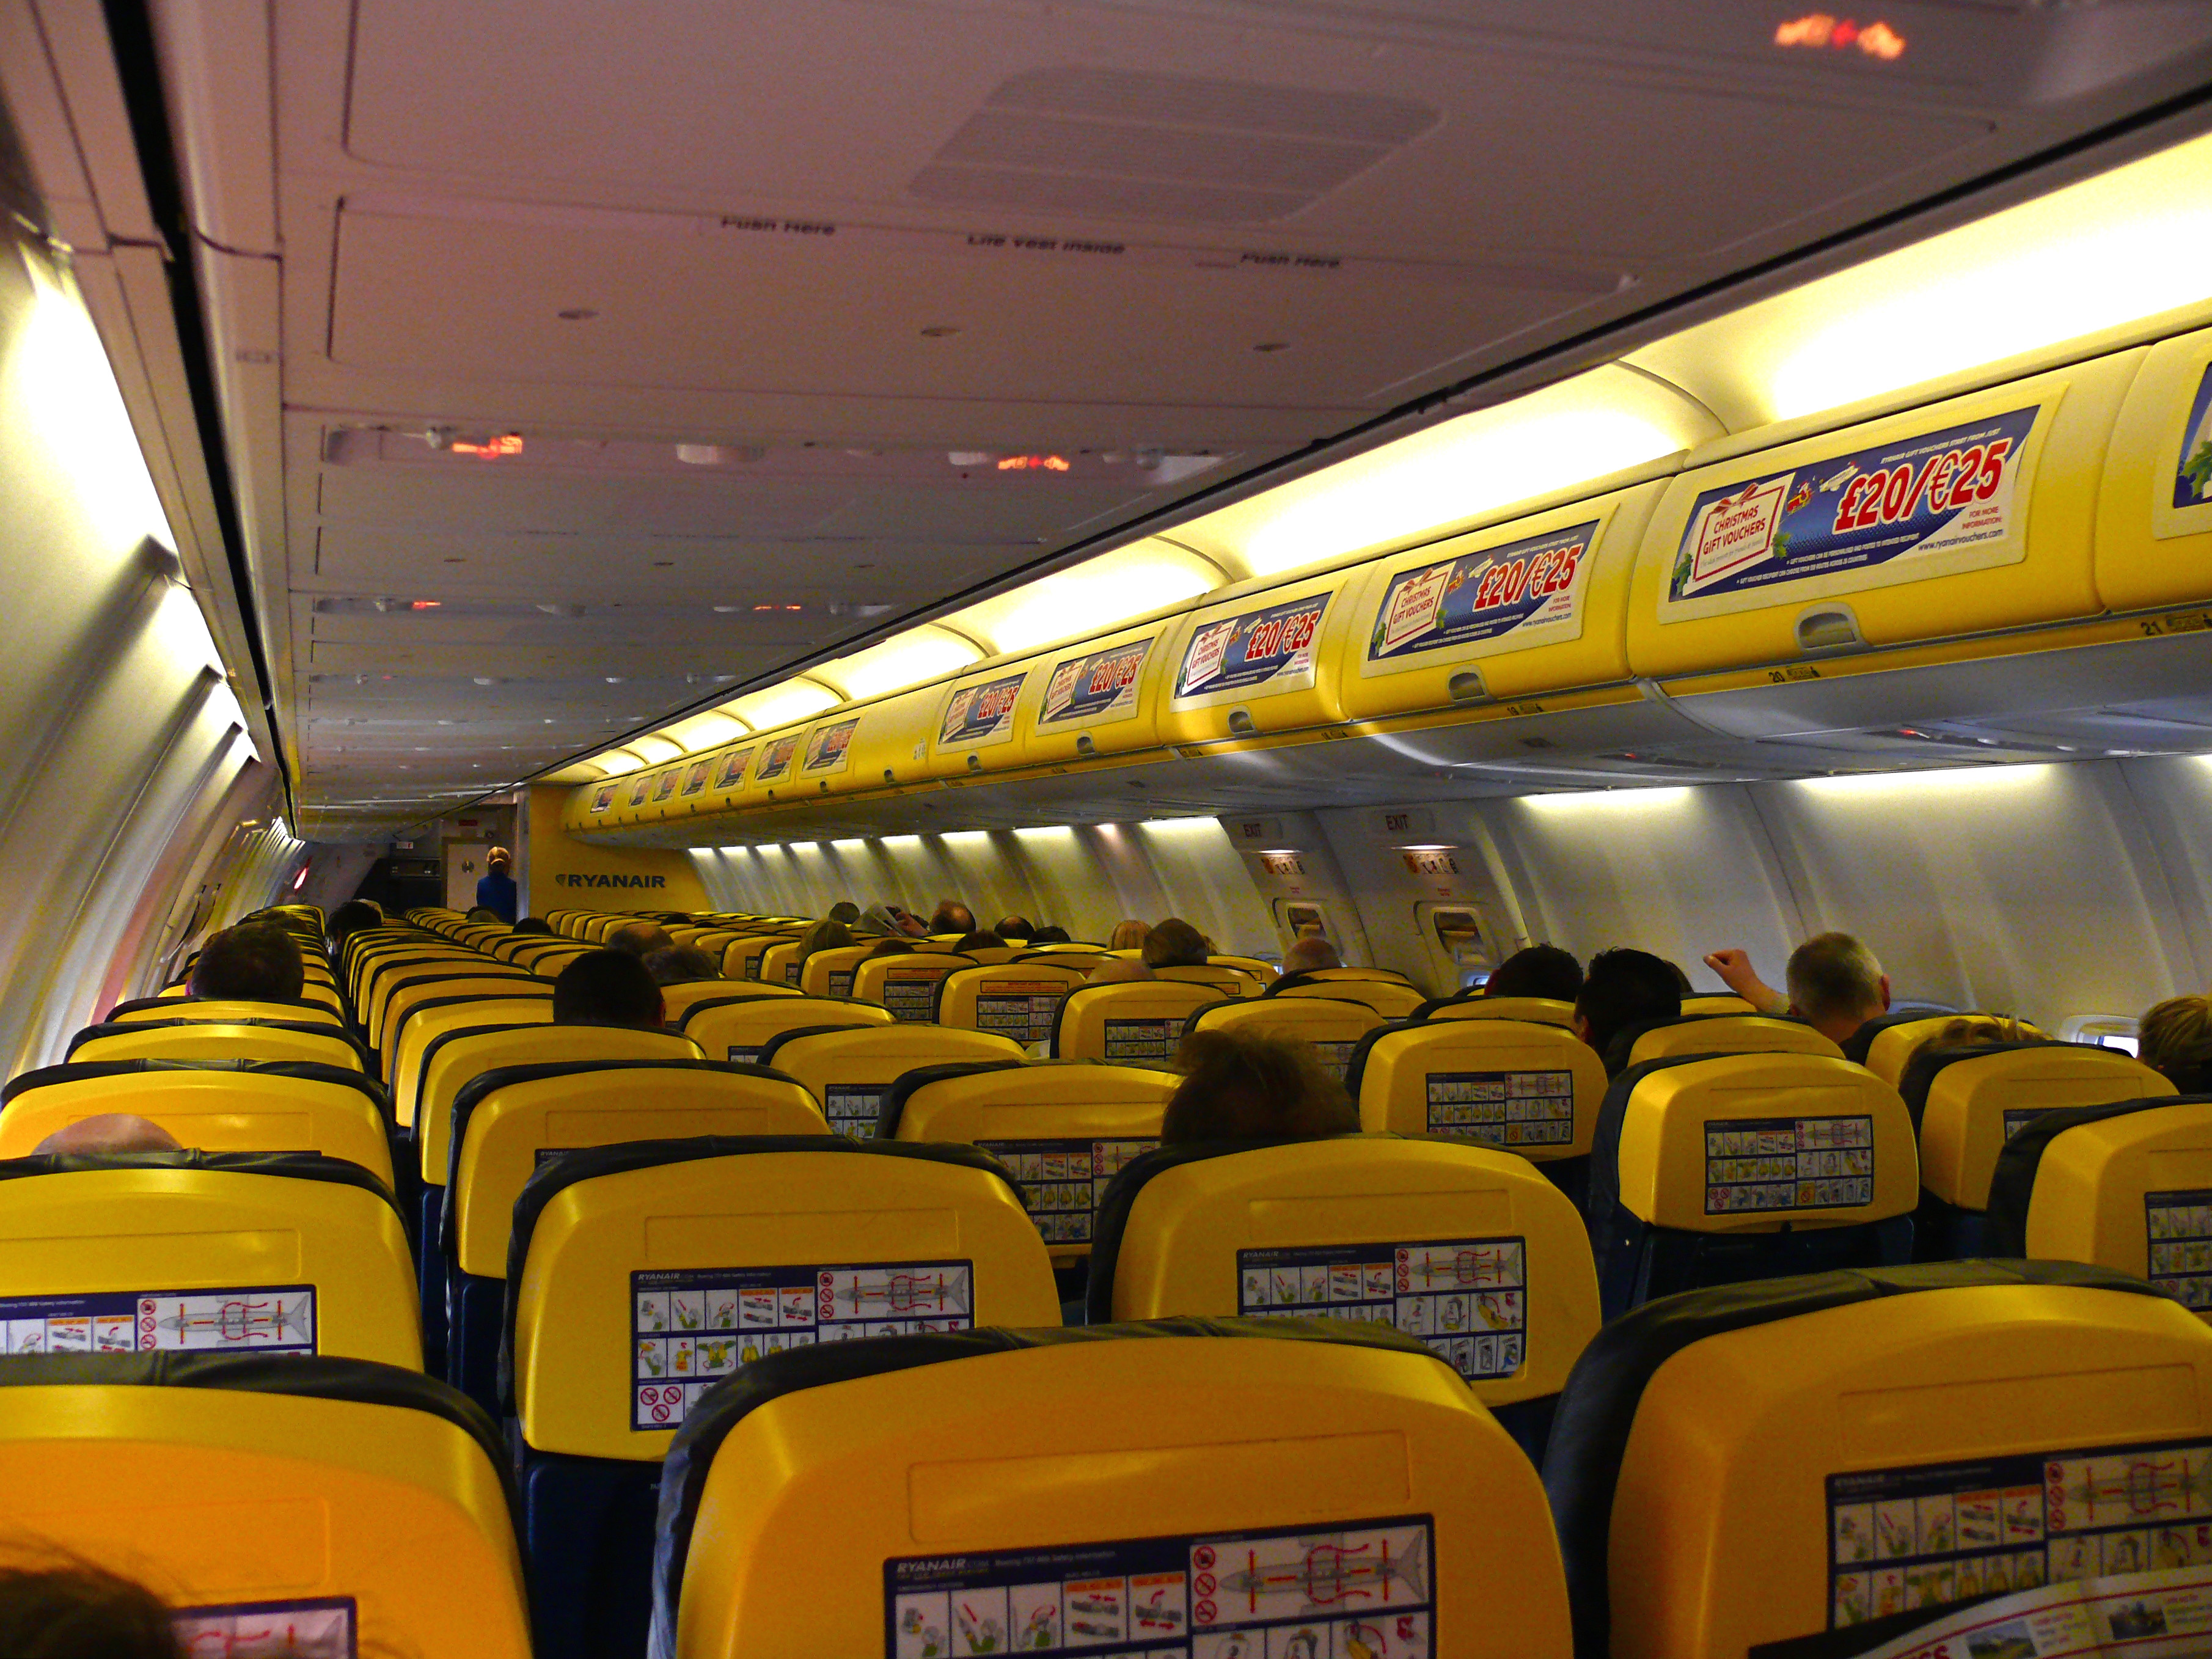 Always Getting Better? Ryanair shows off its new interior